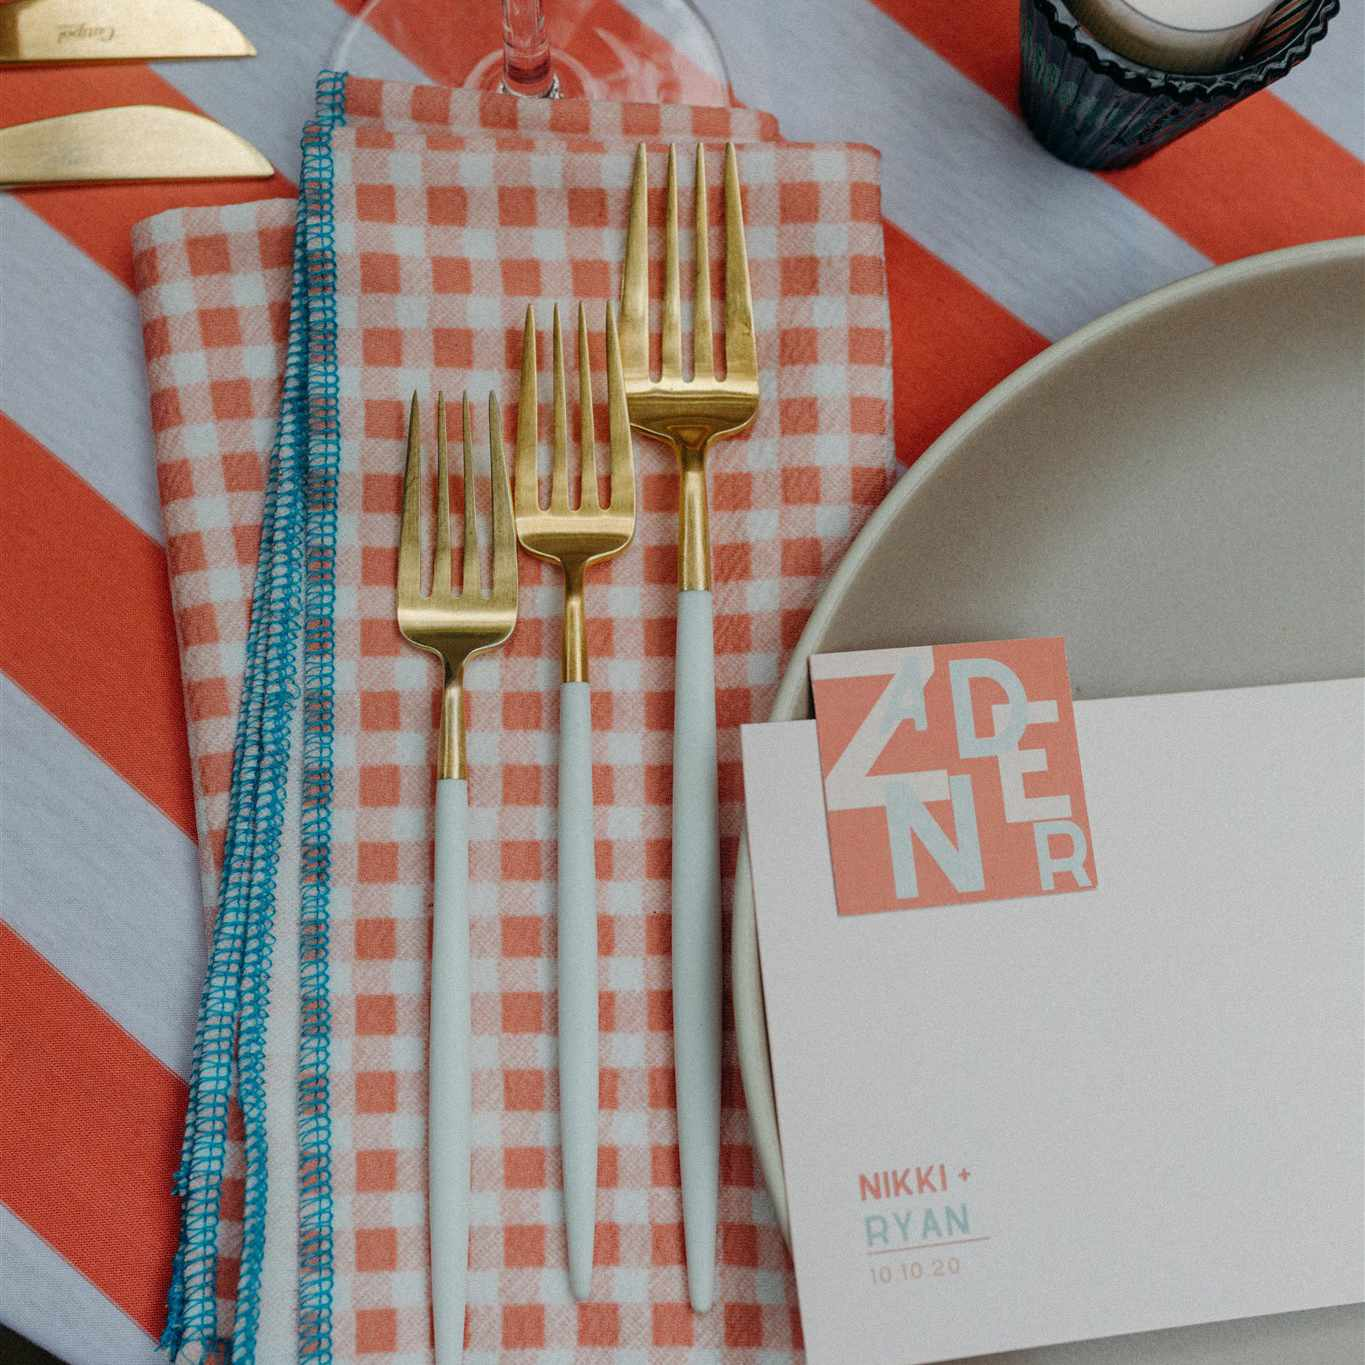 Napkin and cutlery details